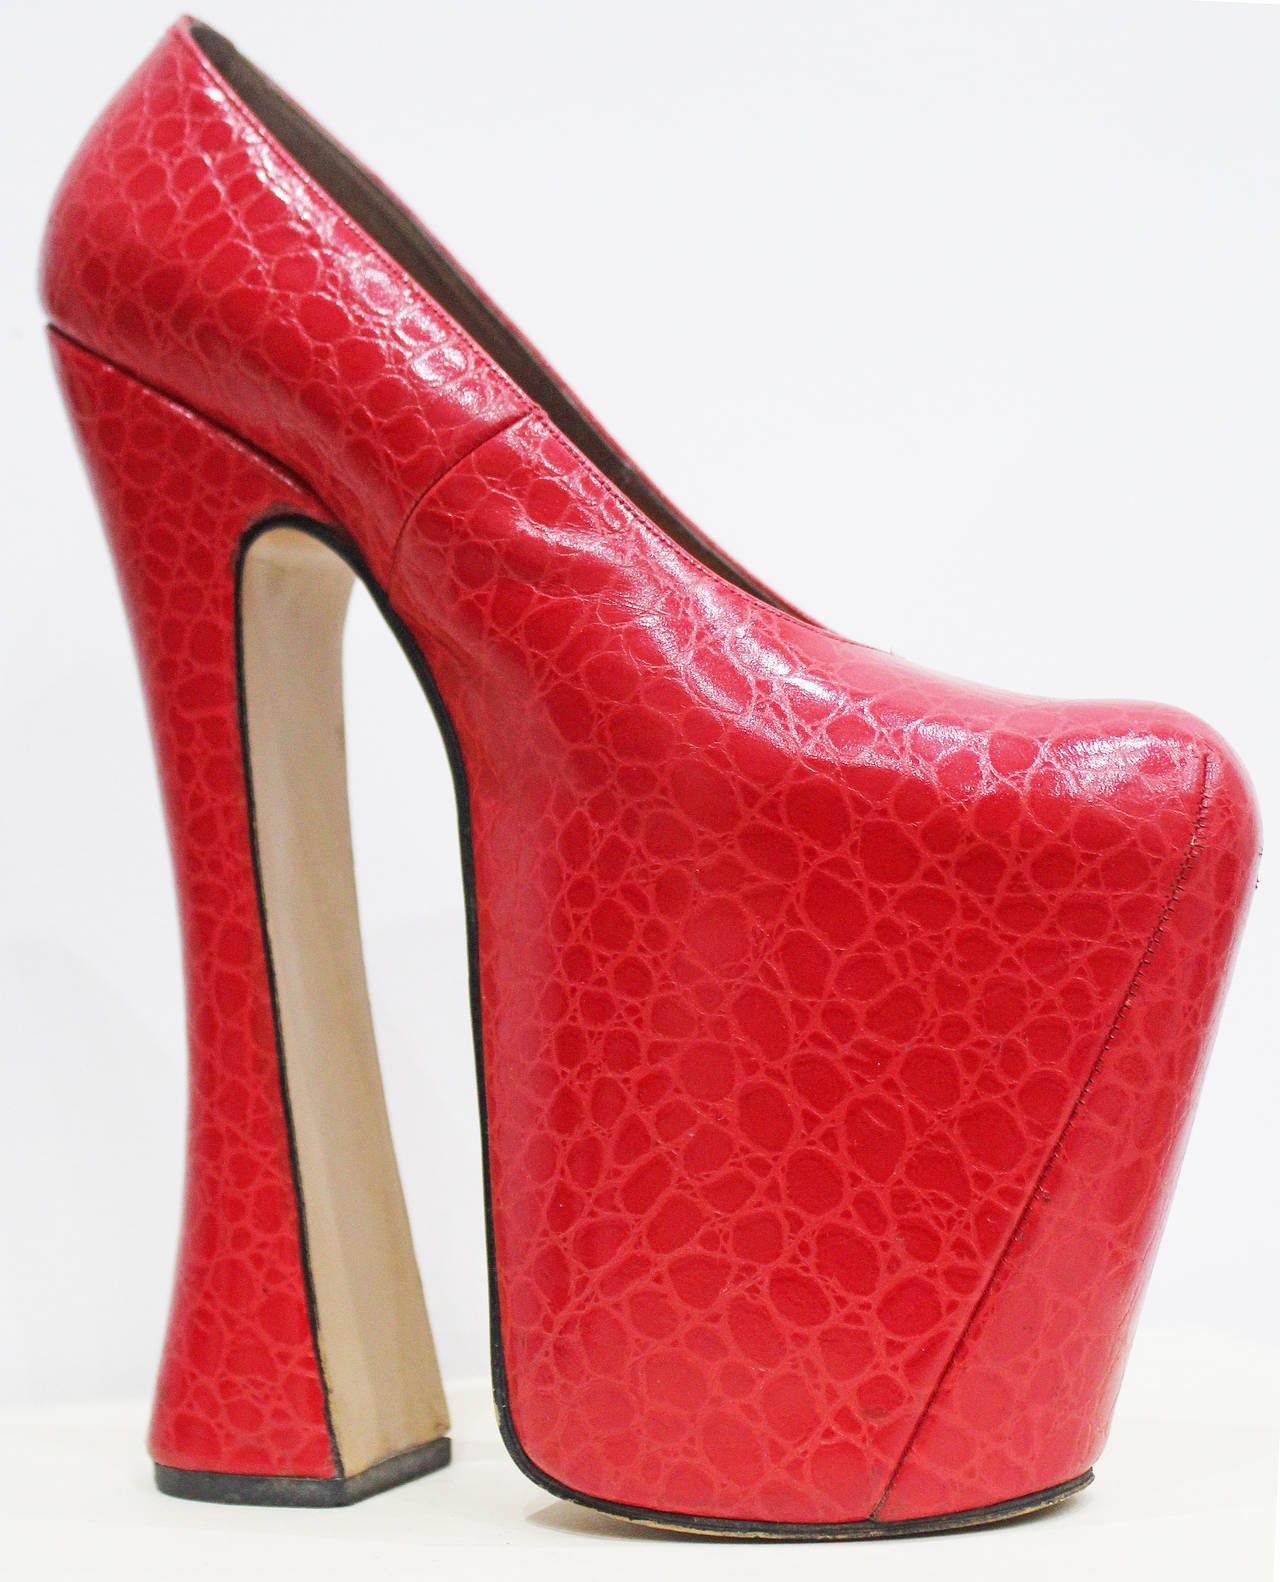 734c3474ba Vivienne Westwood Elevated Court Shoe C. 1993 Shoes, Red Size 6 ...